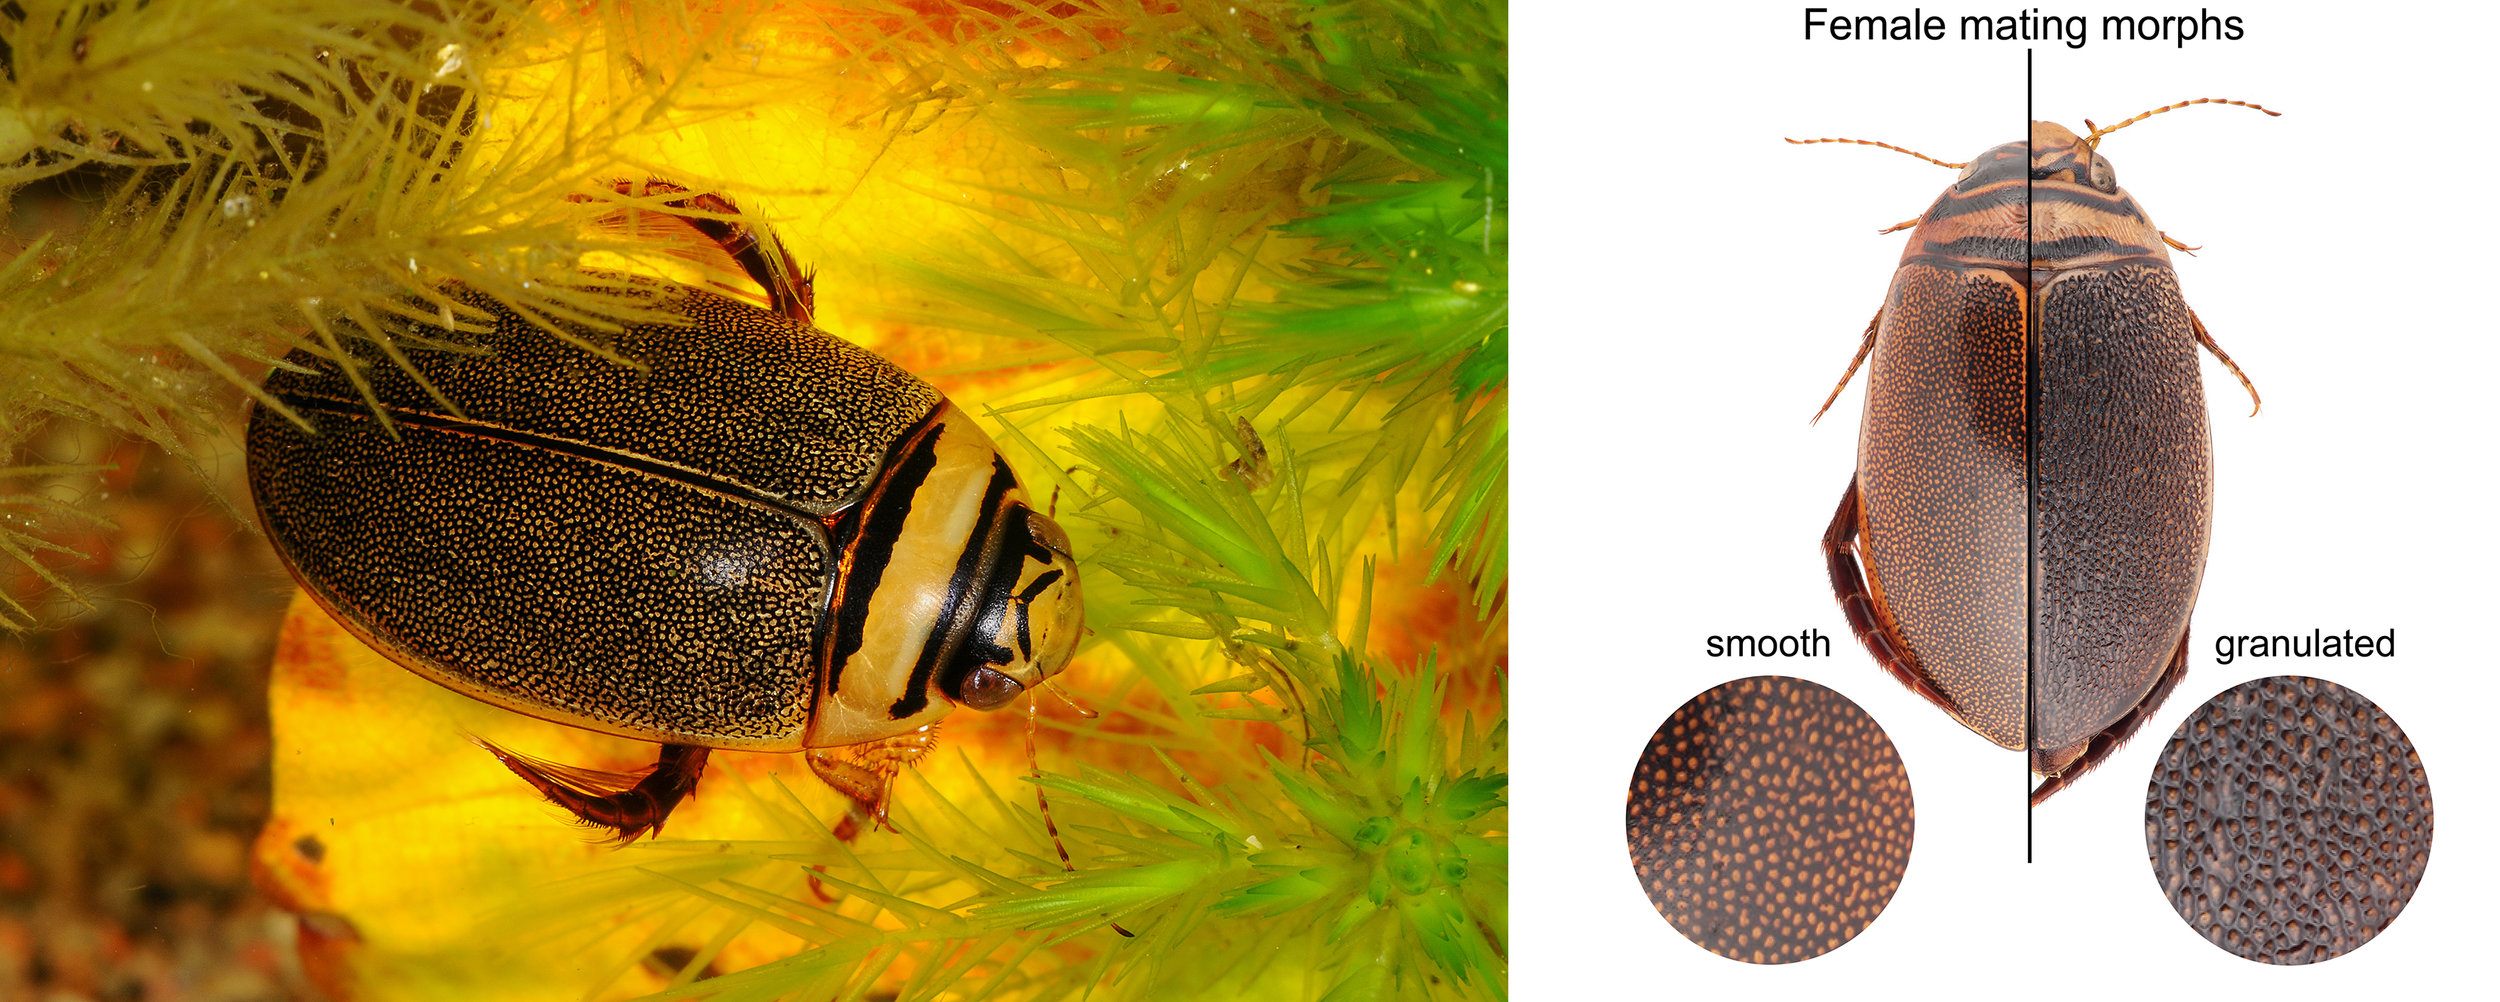 A male of the diving beetle  Graphoderus zonatus  and the two female morphs with or without granulated elytra. The species has been trapped in an evolutionary standstill due to mating conflicts between males and females. Left: © Niels Sloth/Biopix. Right: © Johannes Bergsten.